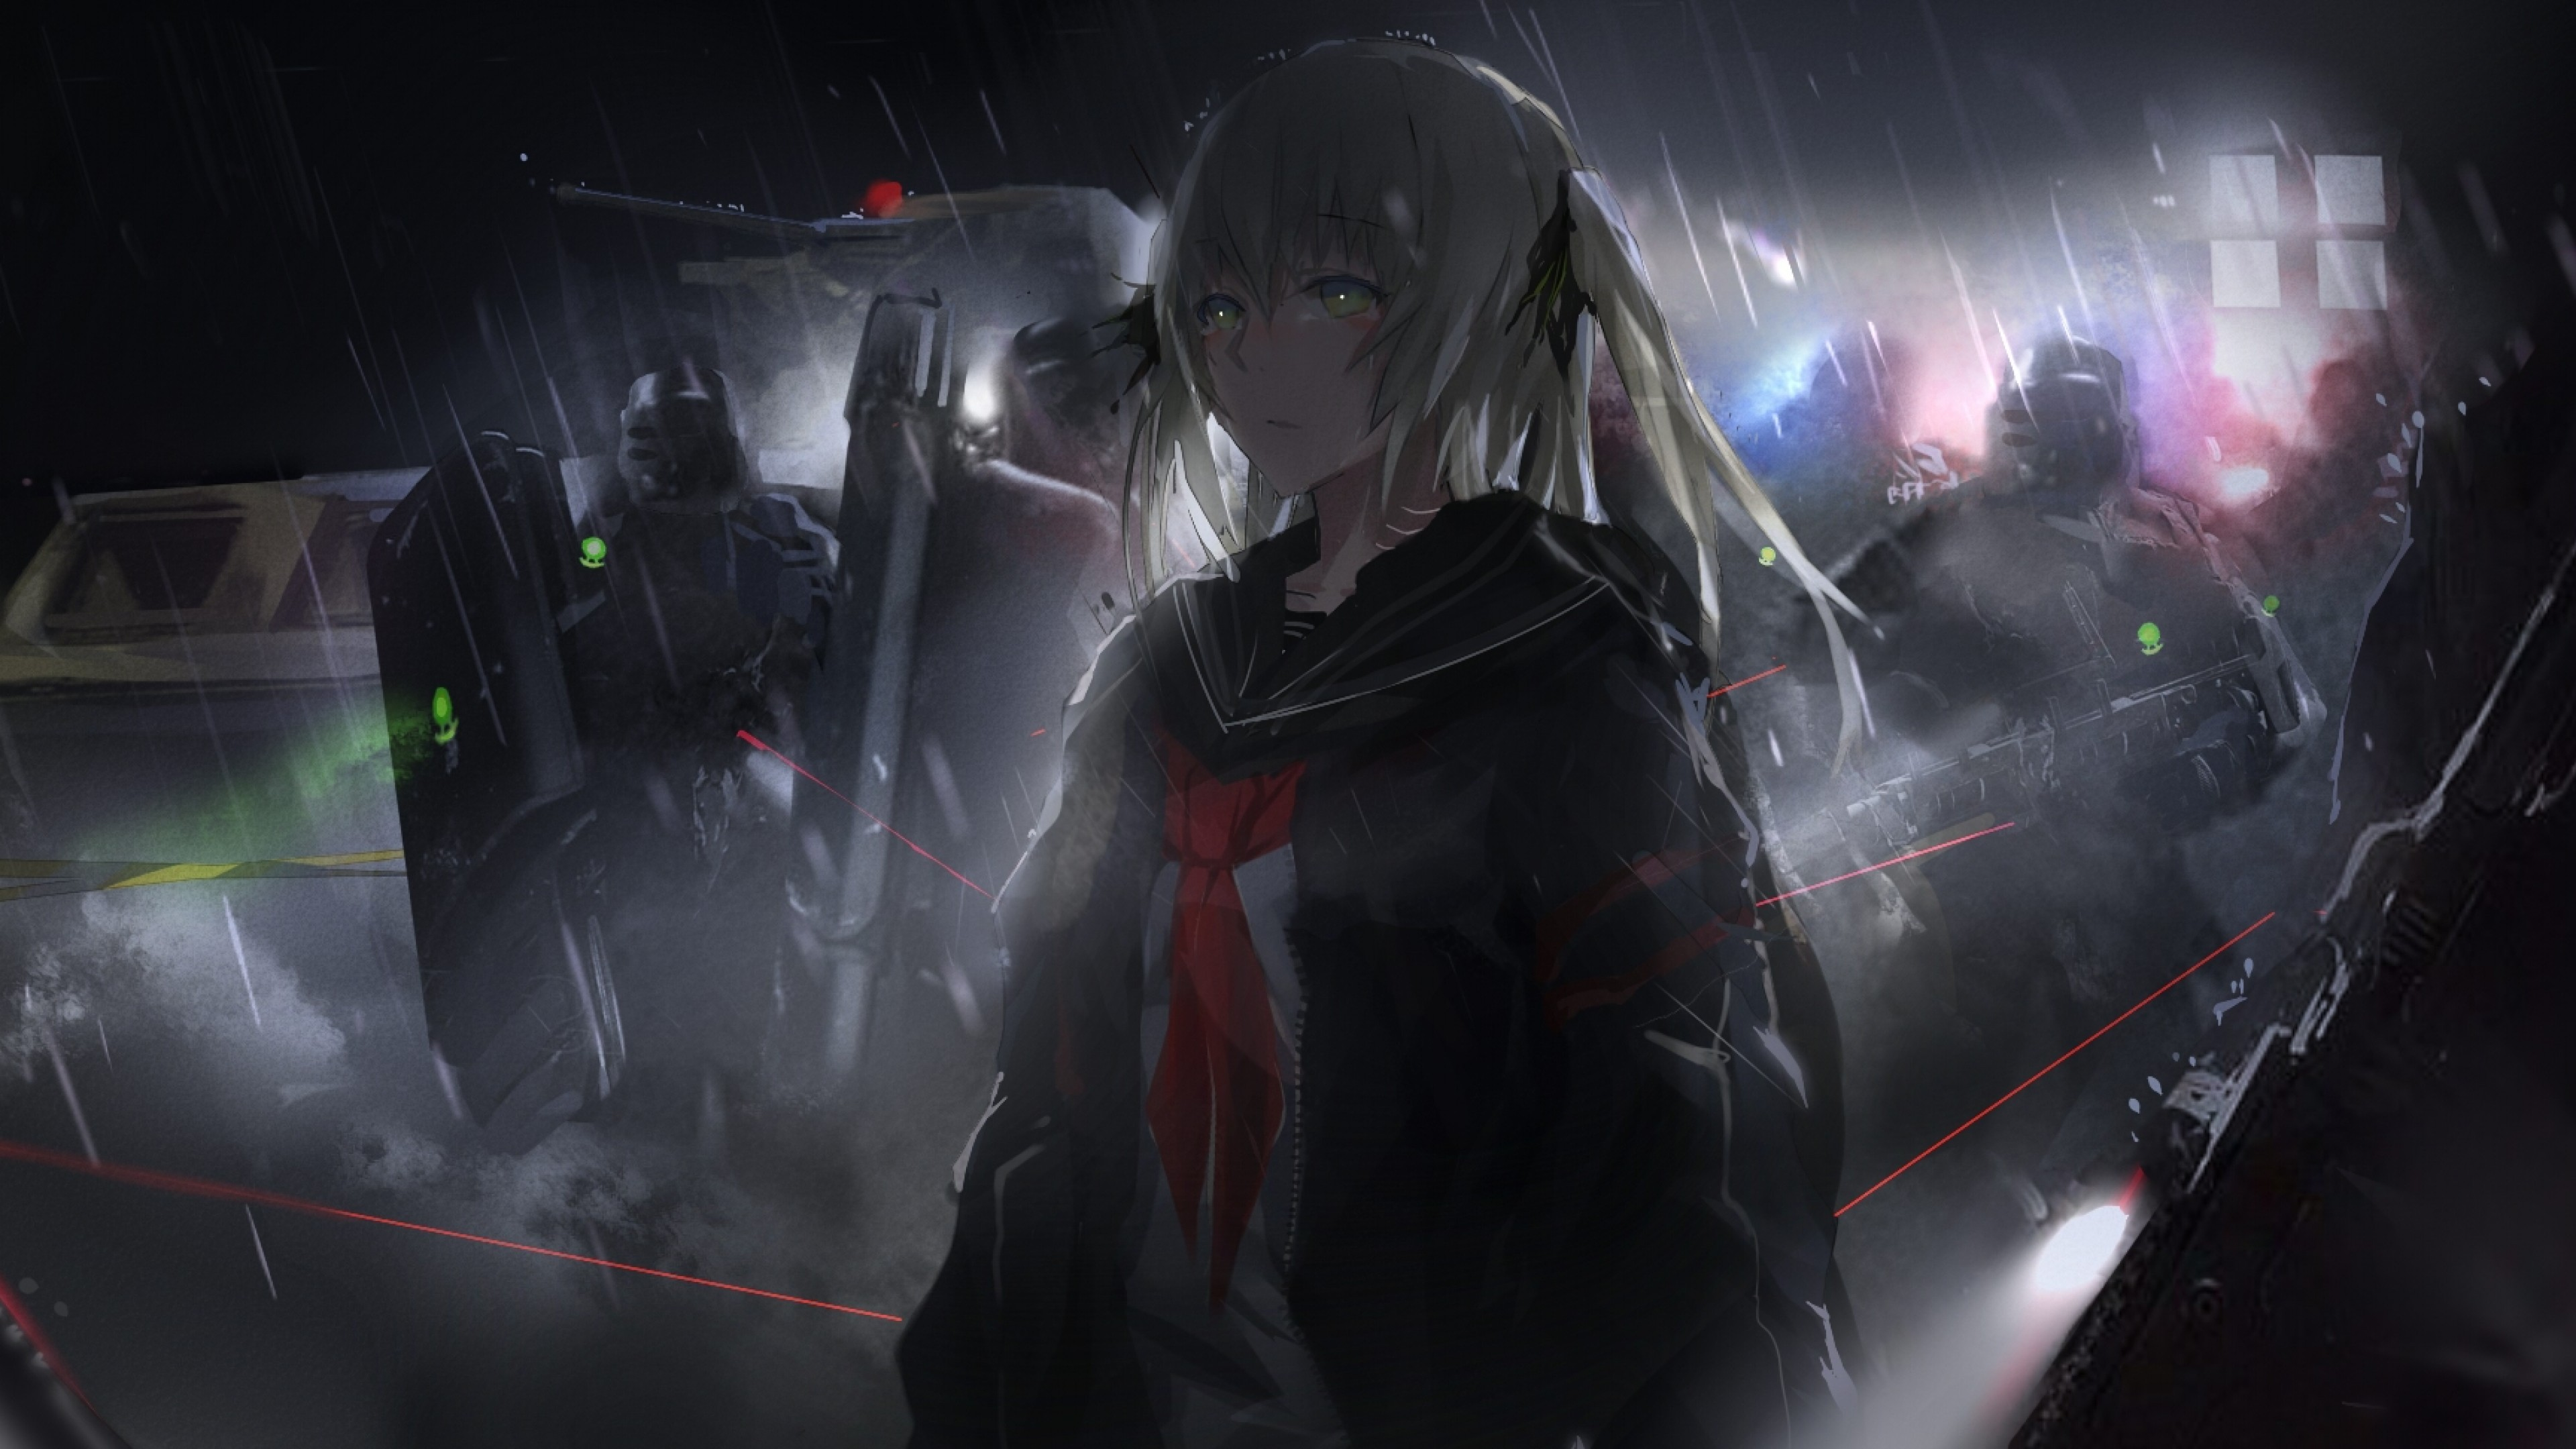 Anime Girl Soldiers Raining Dark Theme Guns Anime